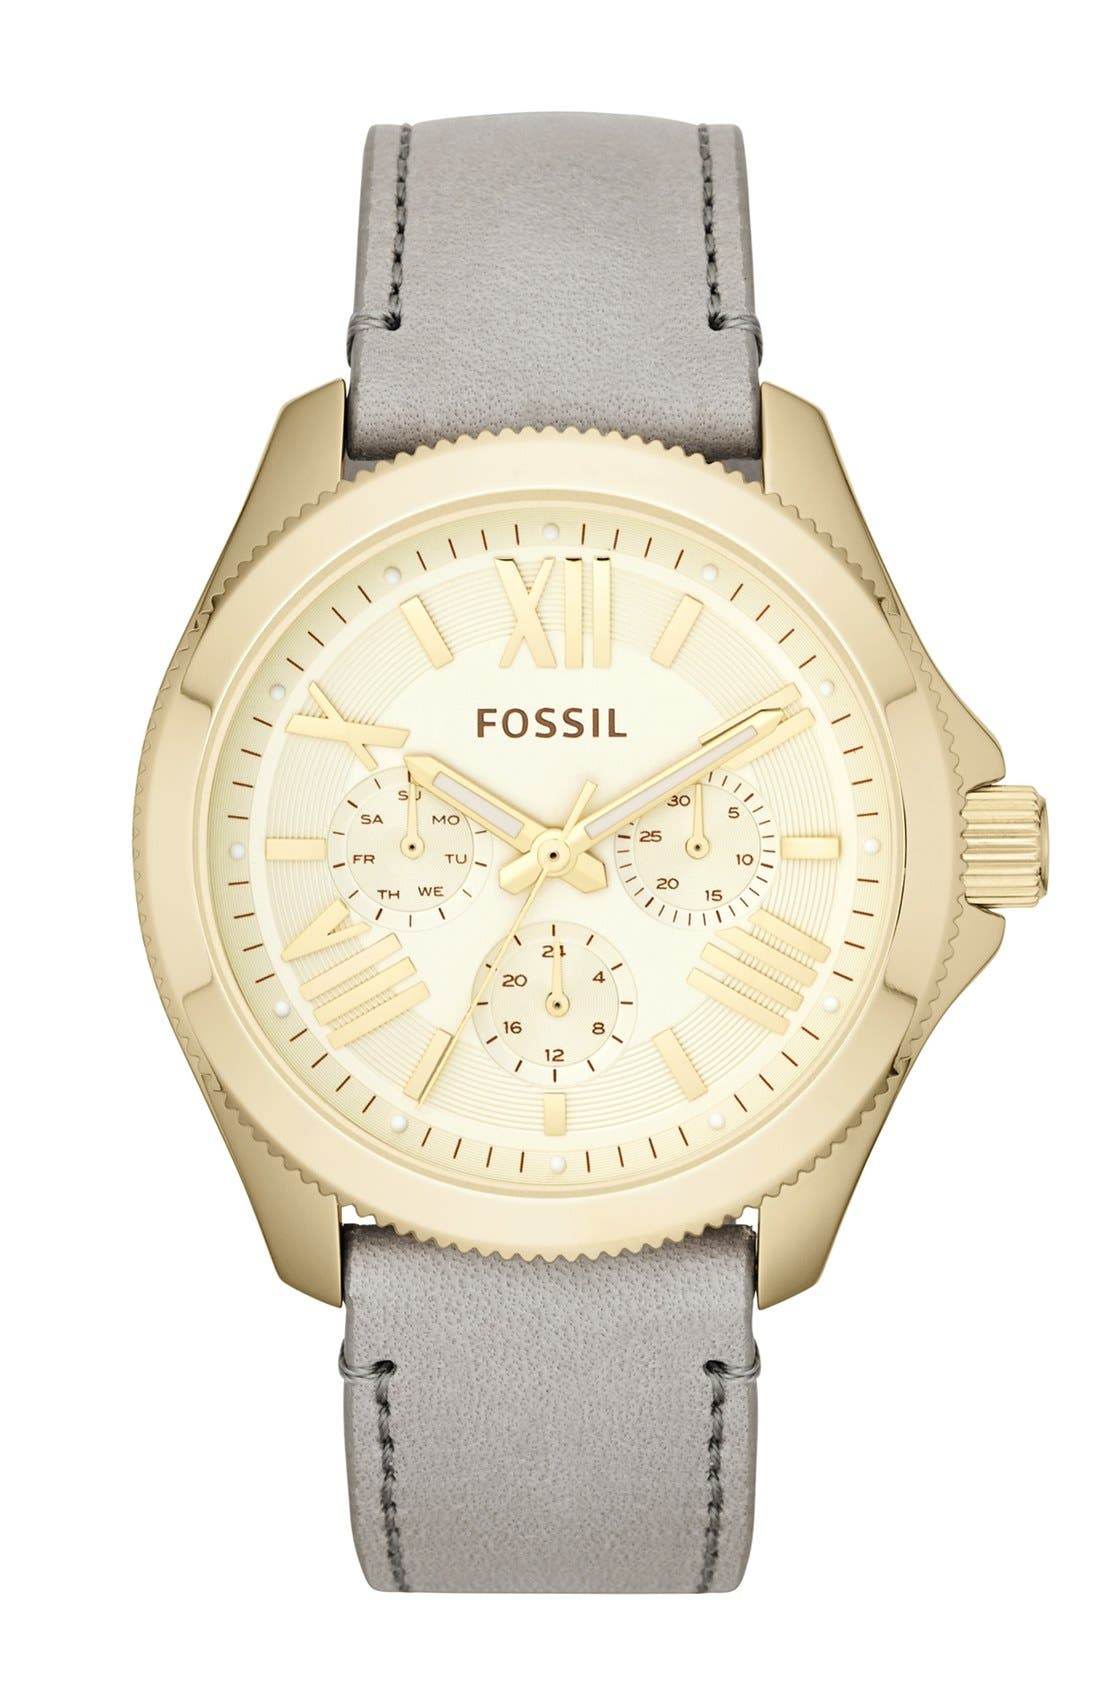 FOSSIL 'Cecile' Multifunction Leather Strap Watch, 40mm, Main, color, 020